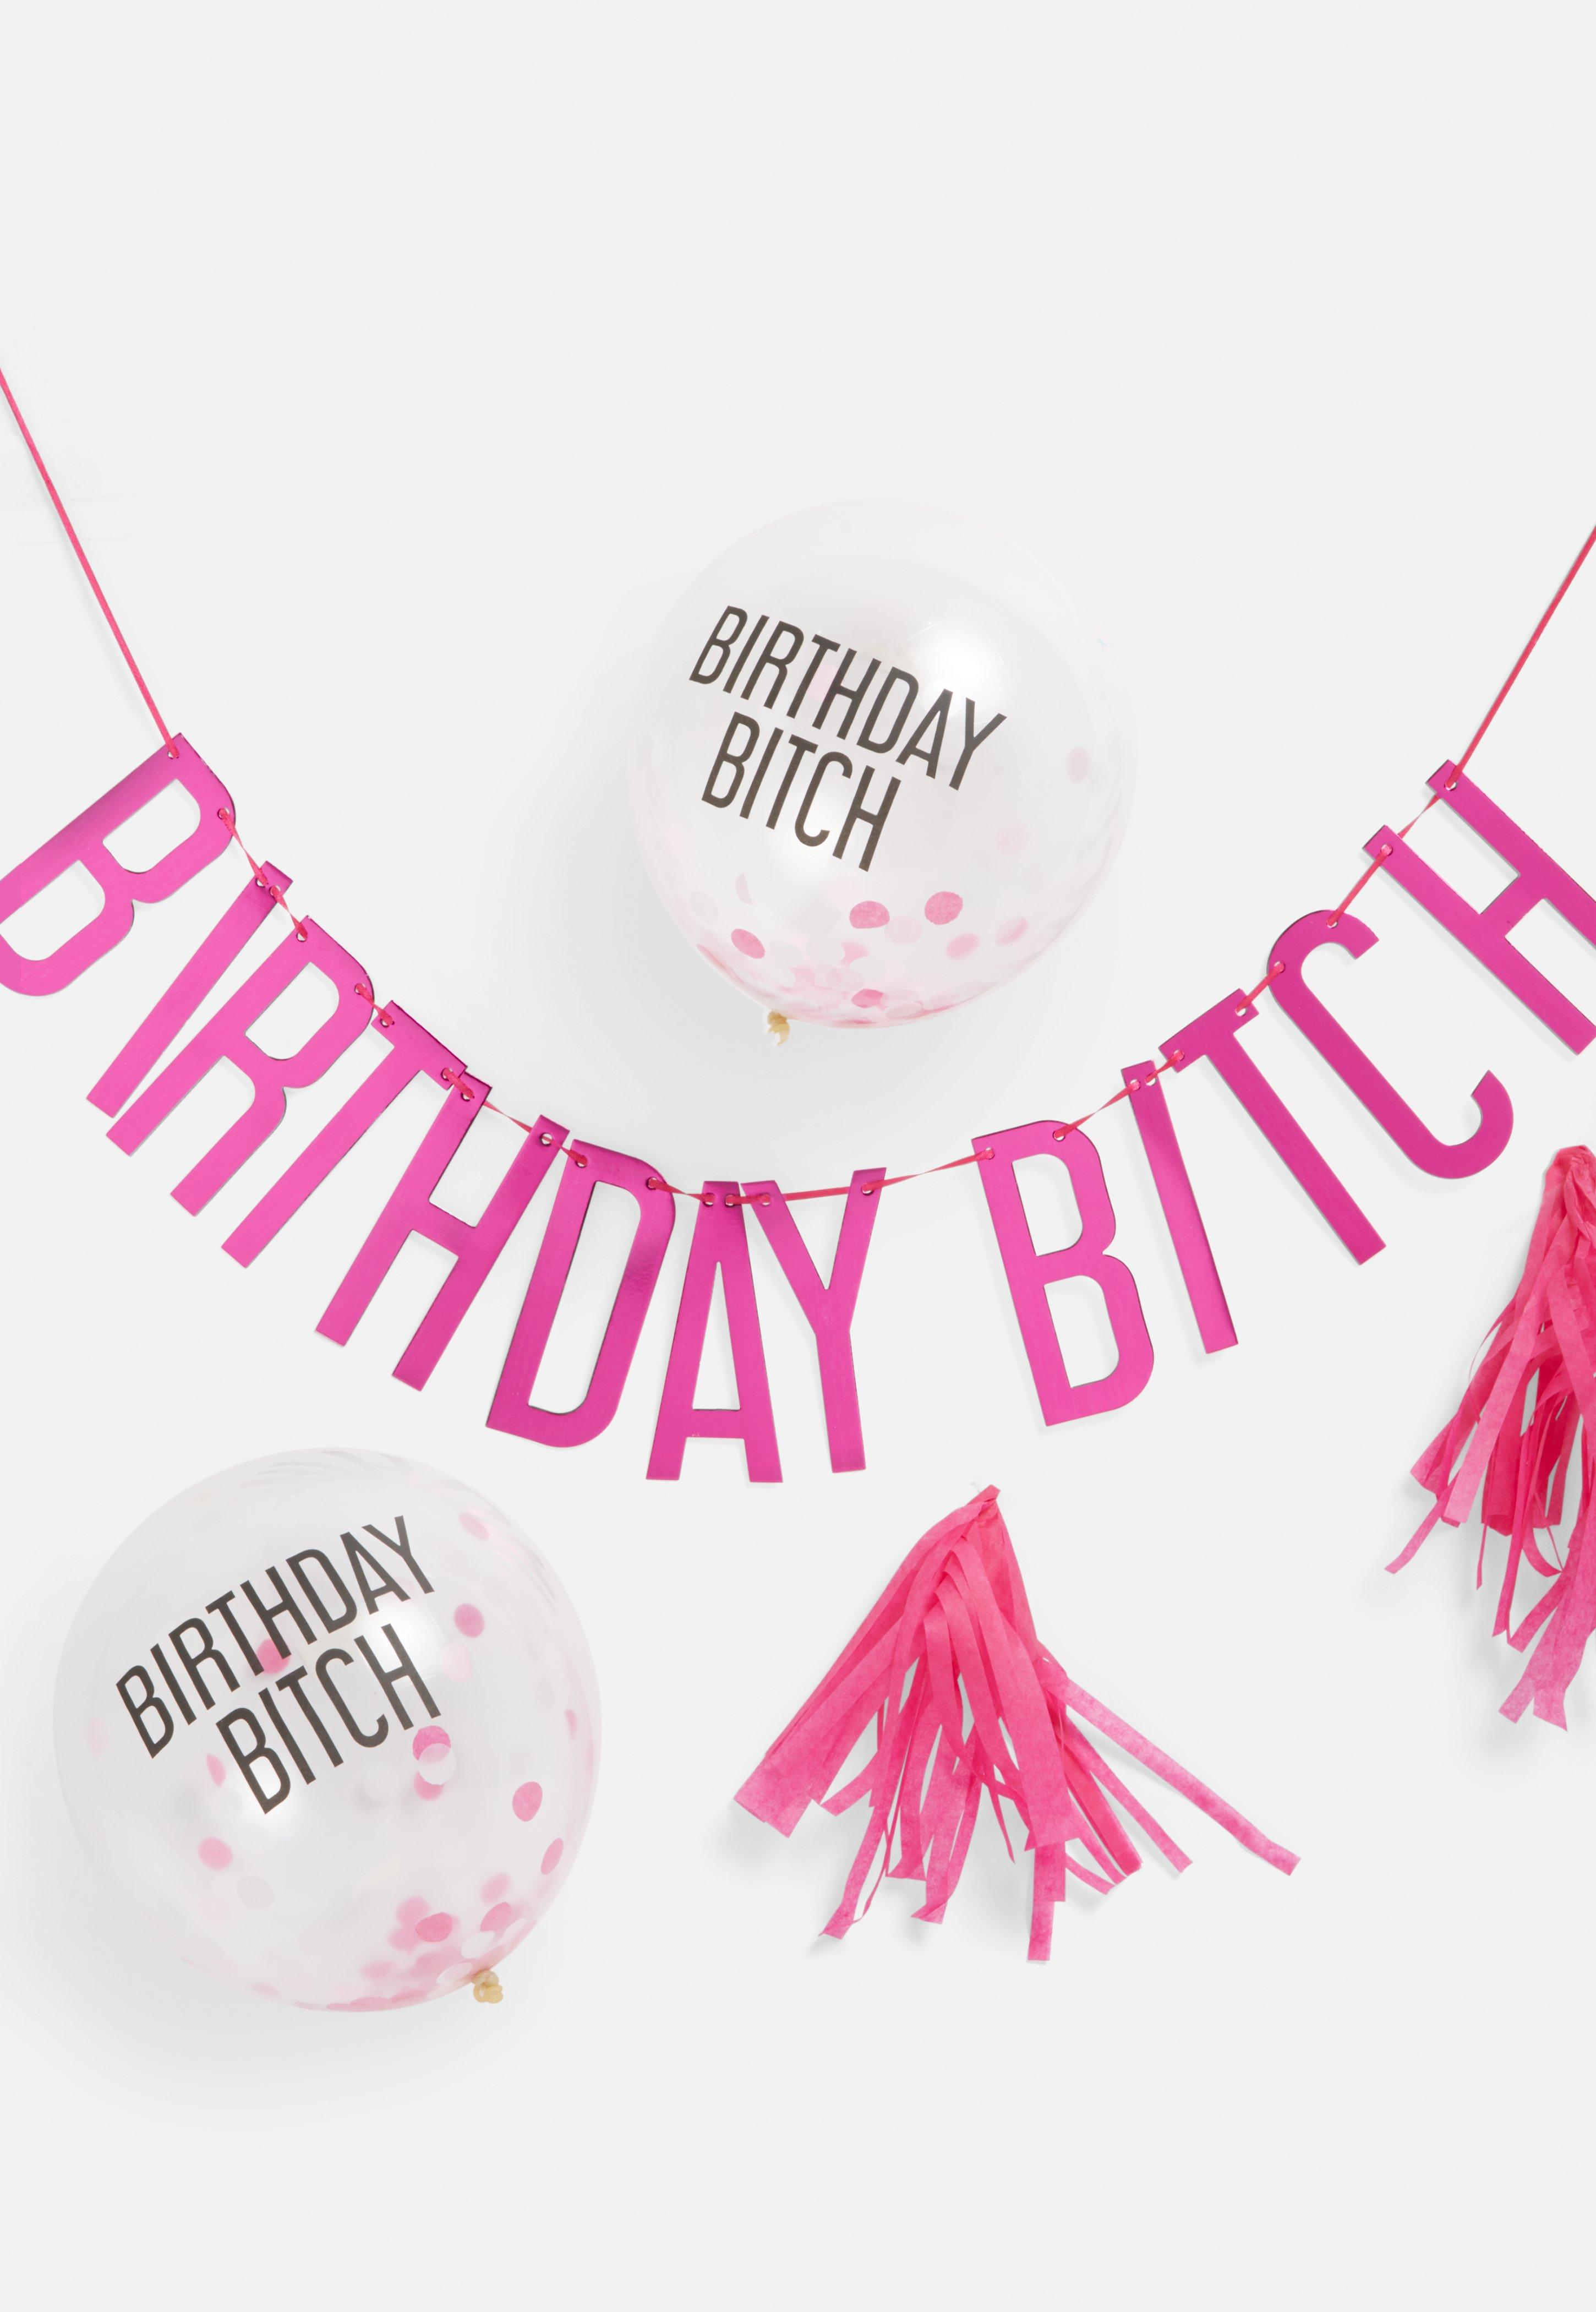 Ginger Ray Birthday B**Ch Pink Balloons And Bunting Pack by Missguided